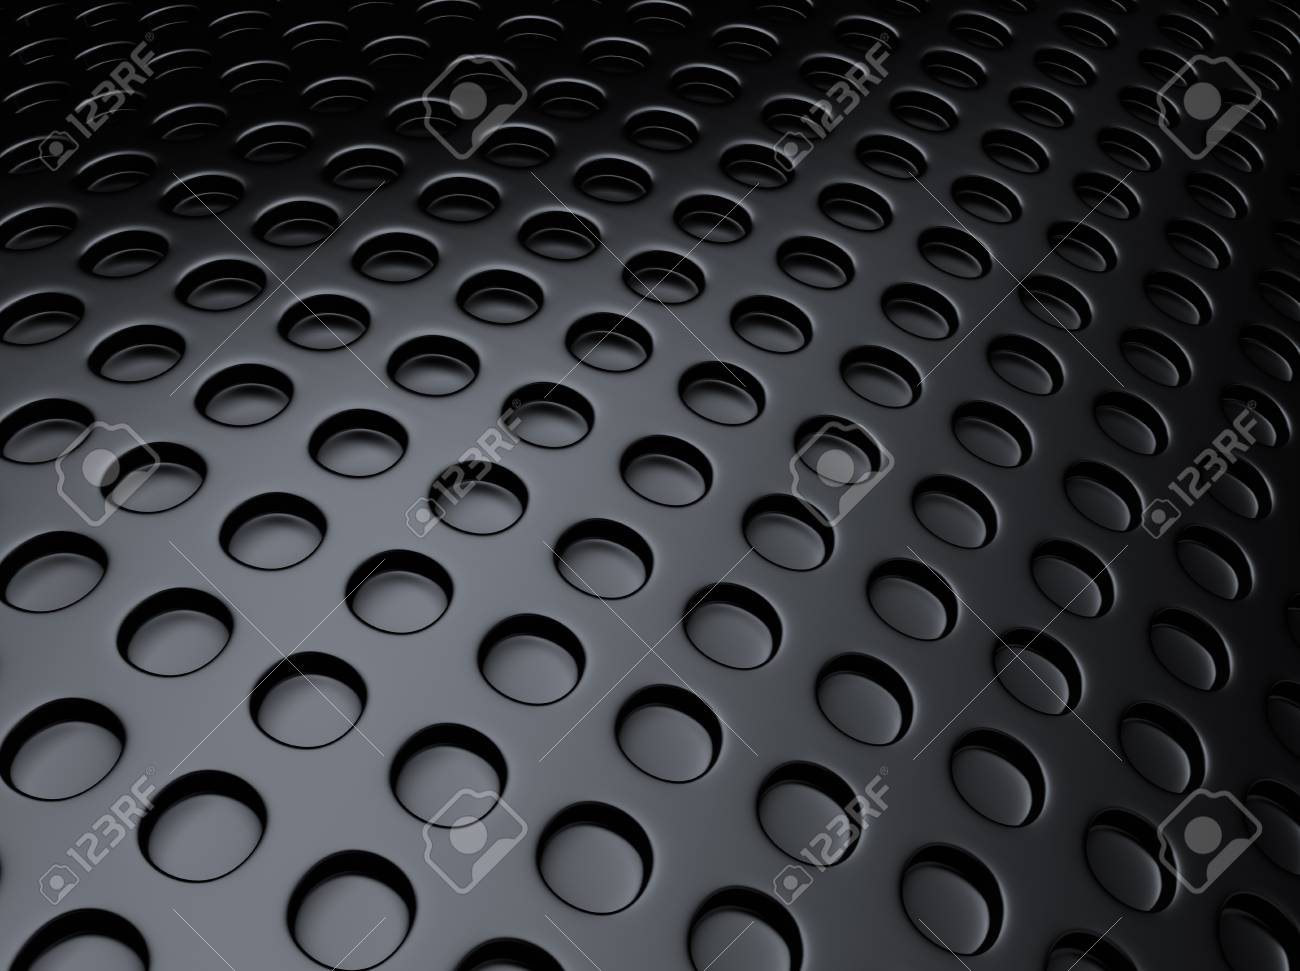 Black metallic background with lot of perforated dots Stock Photo - 18701948